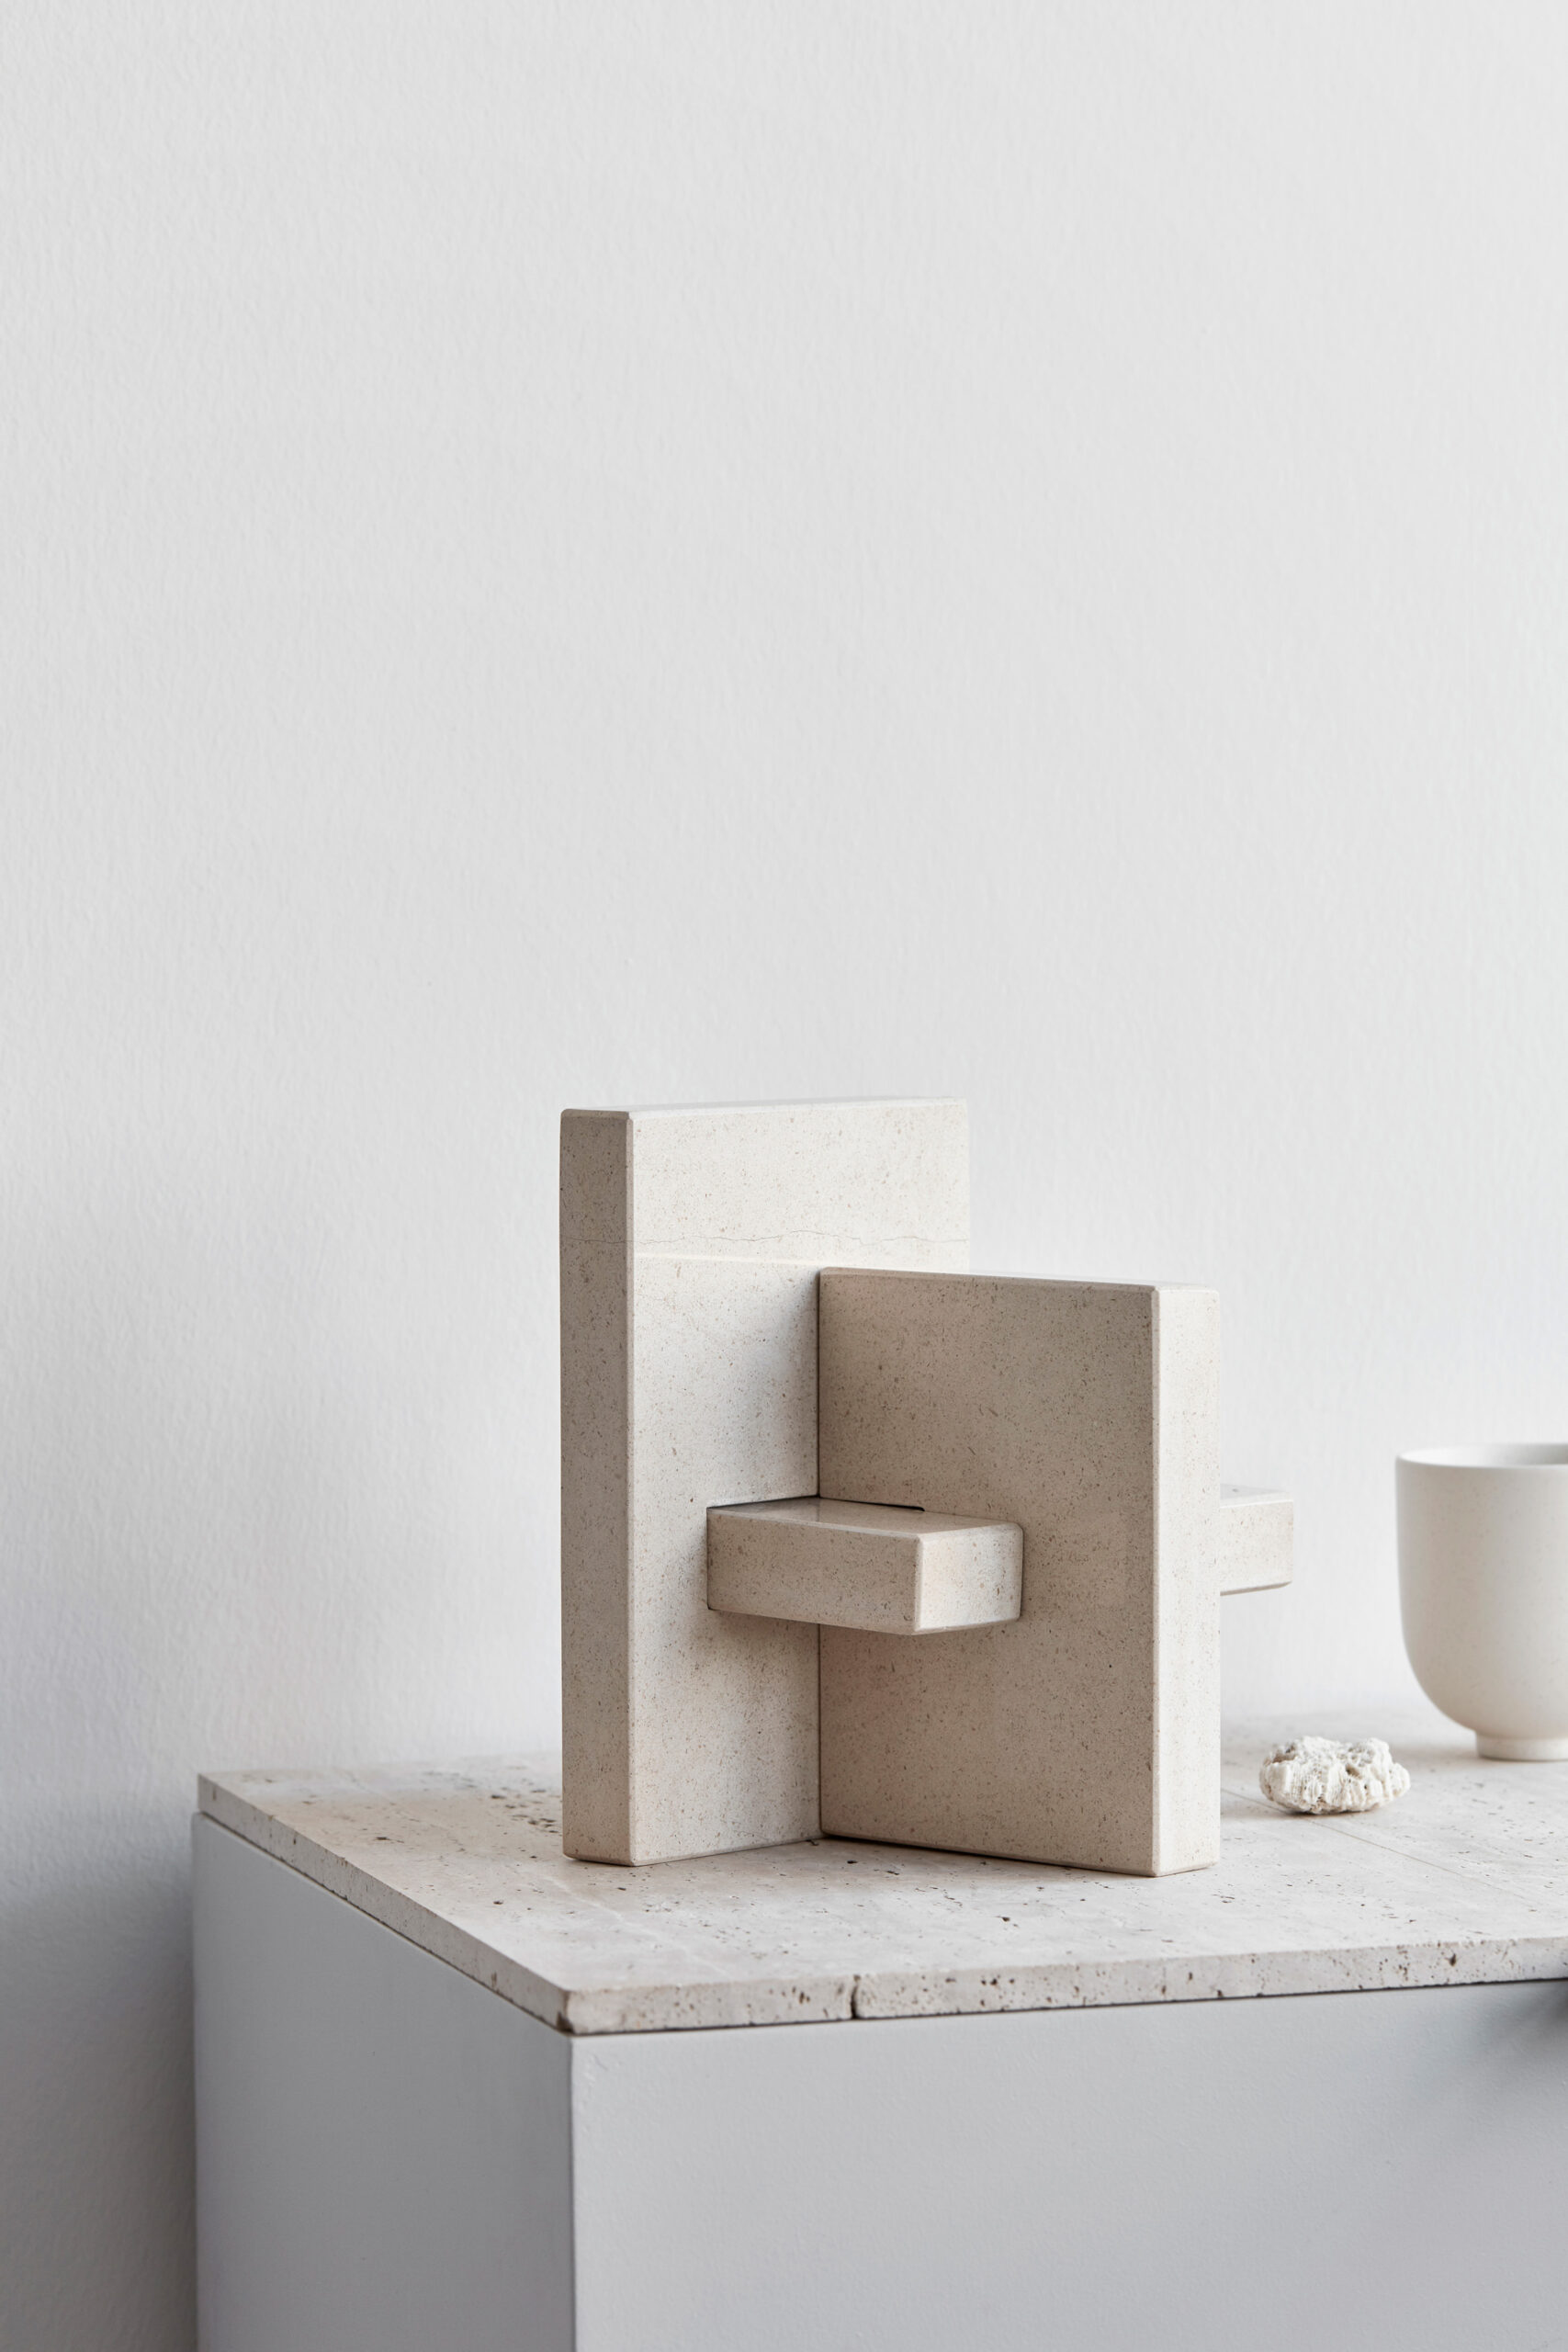 SS19_Archisculpture-1-1